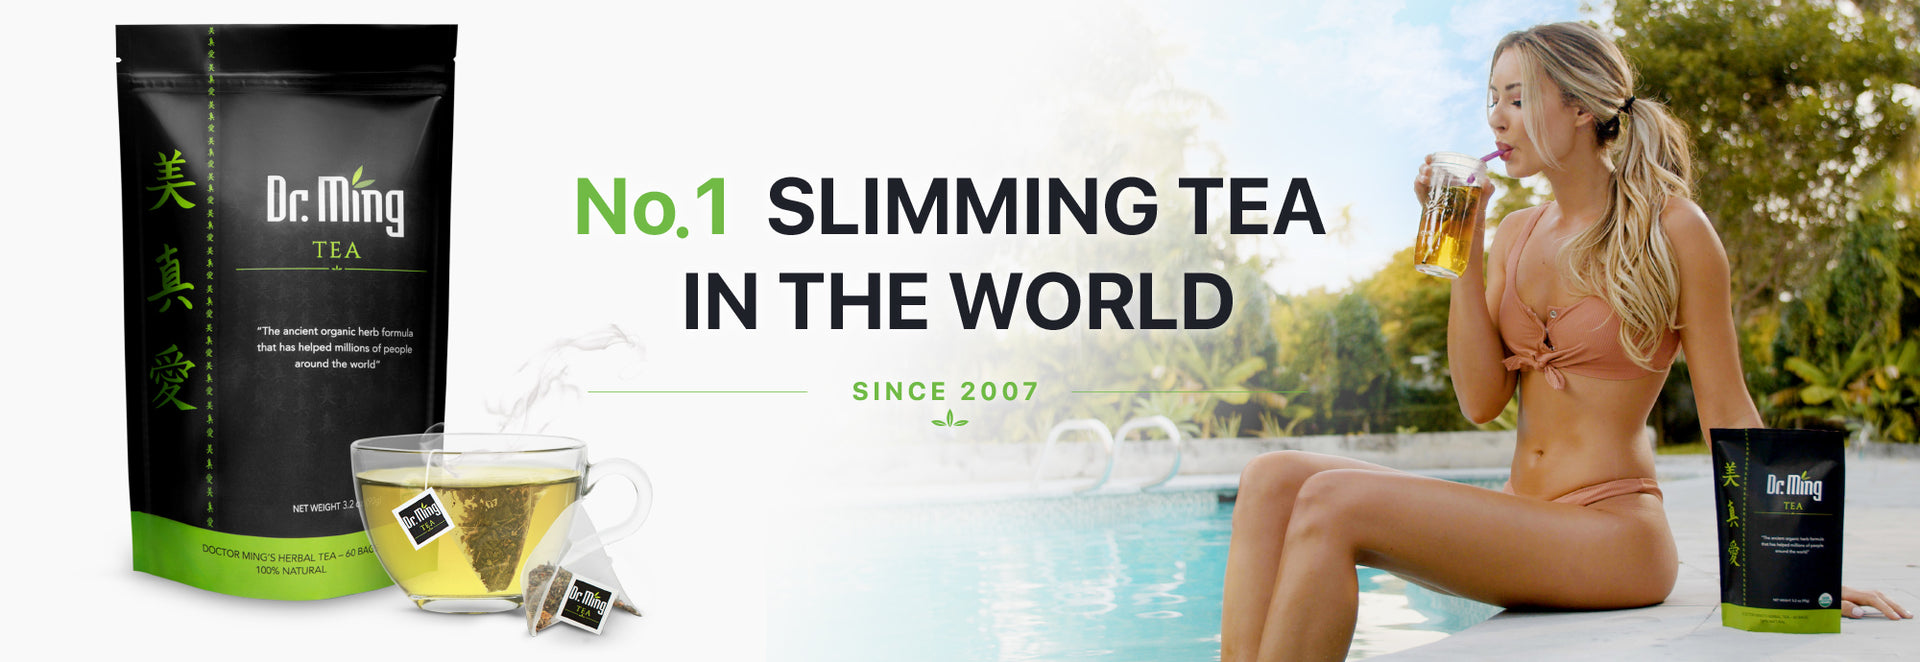 No1 Slimming Tea in the World